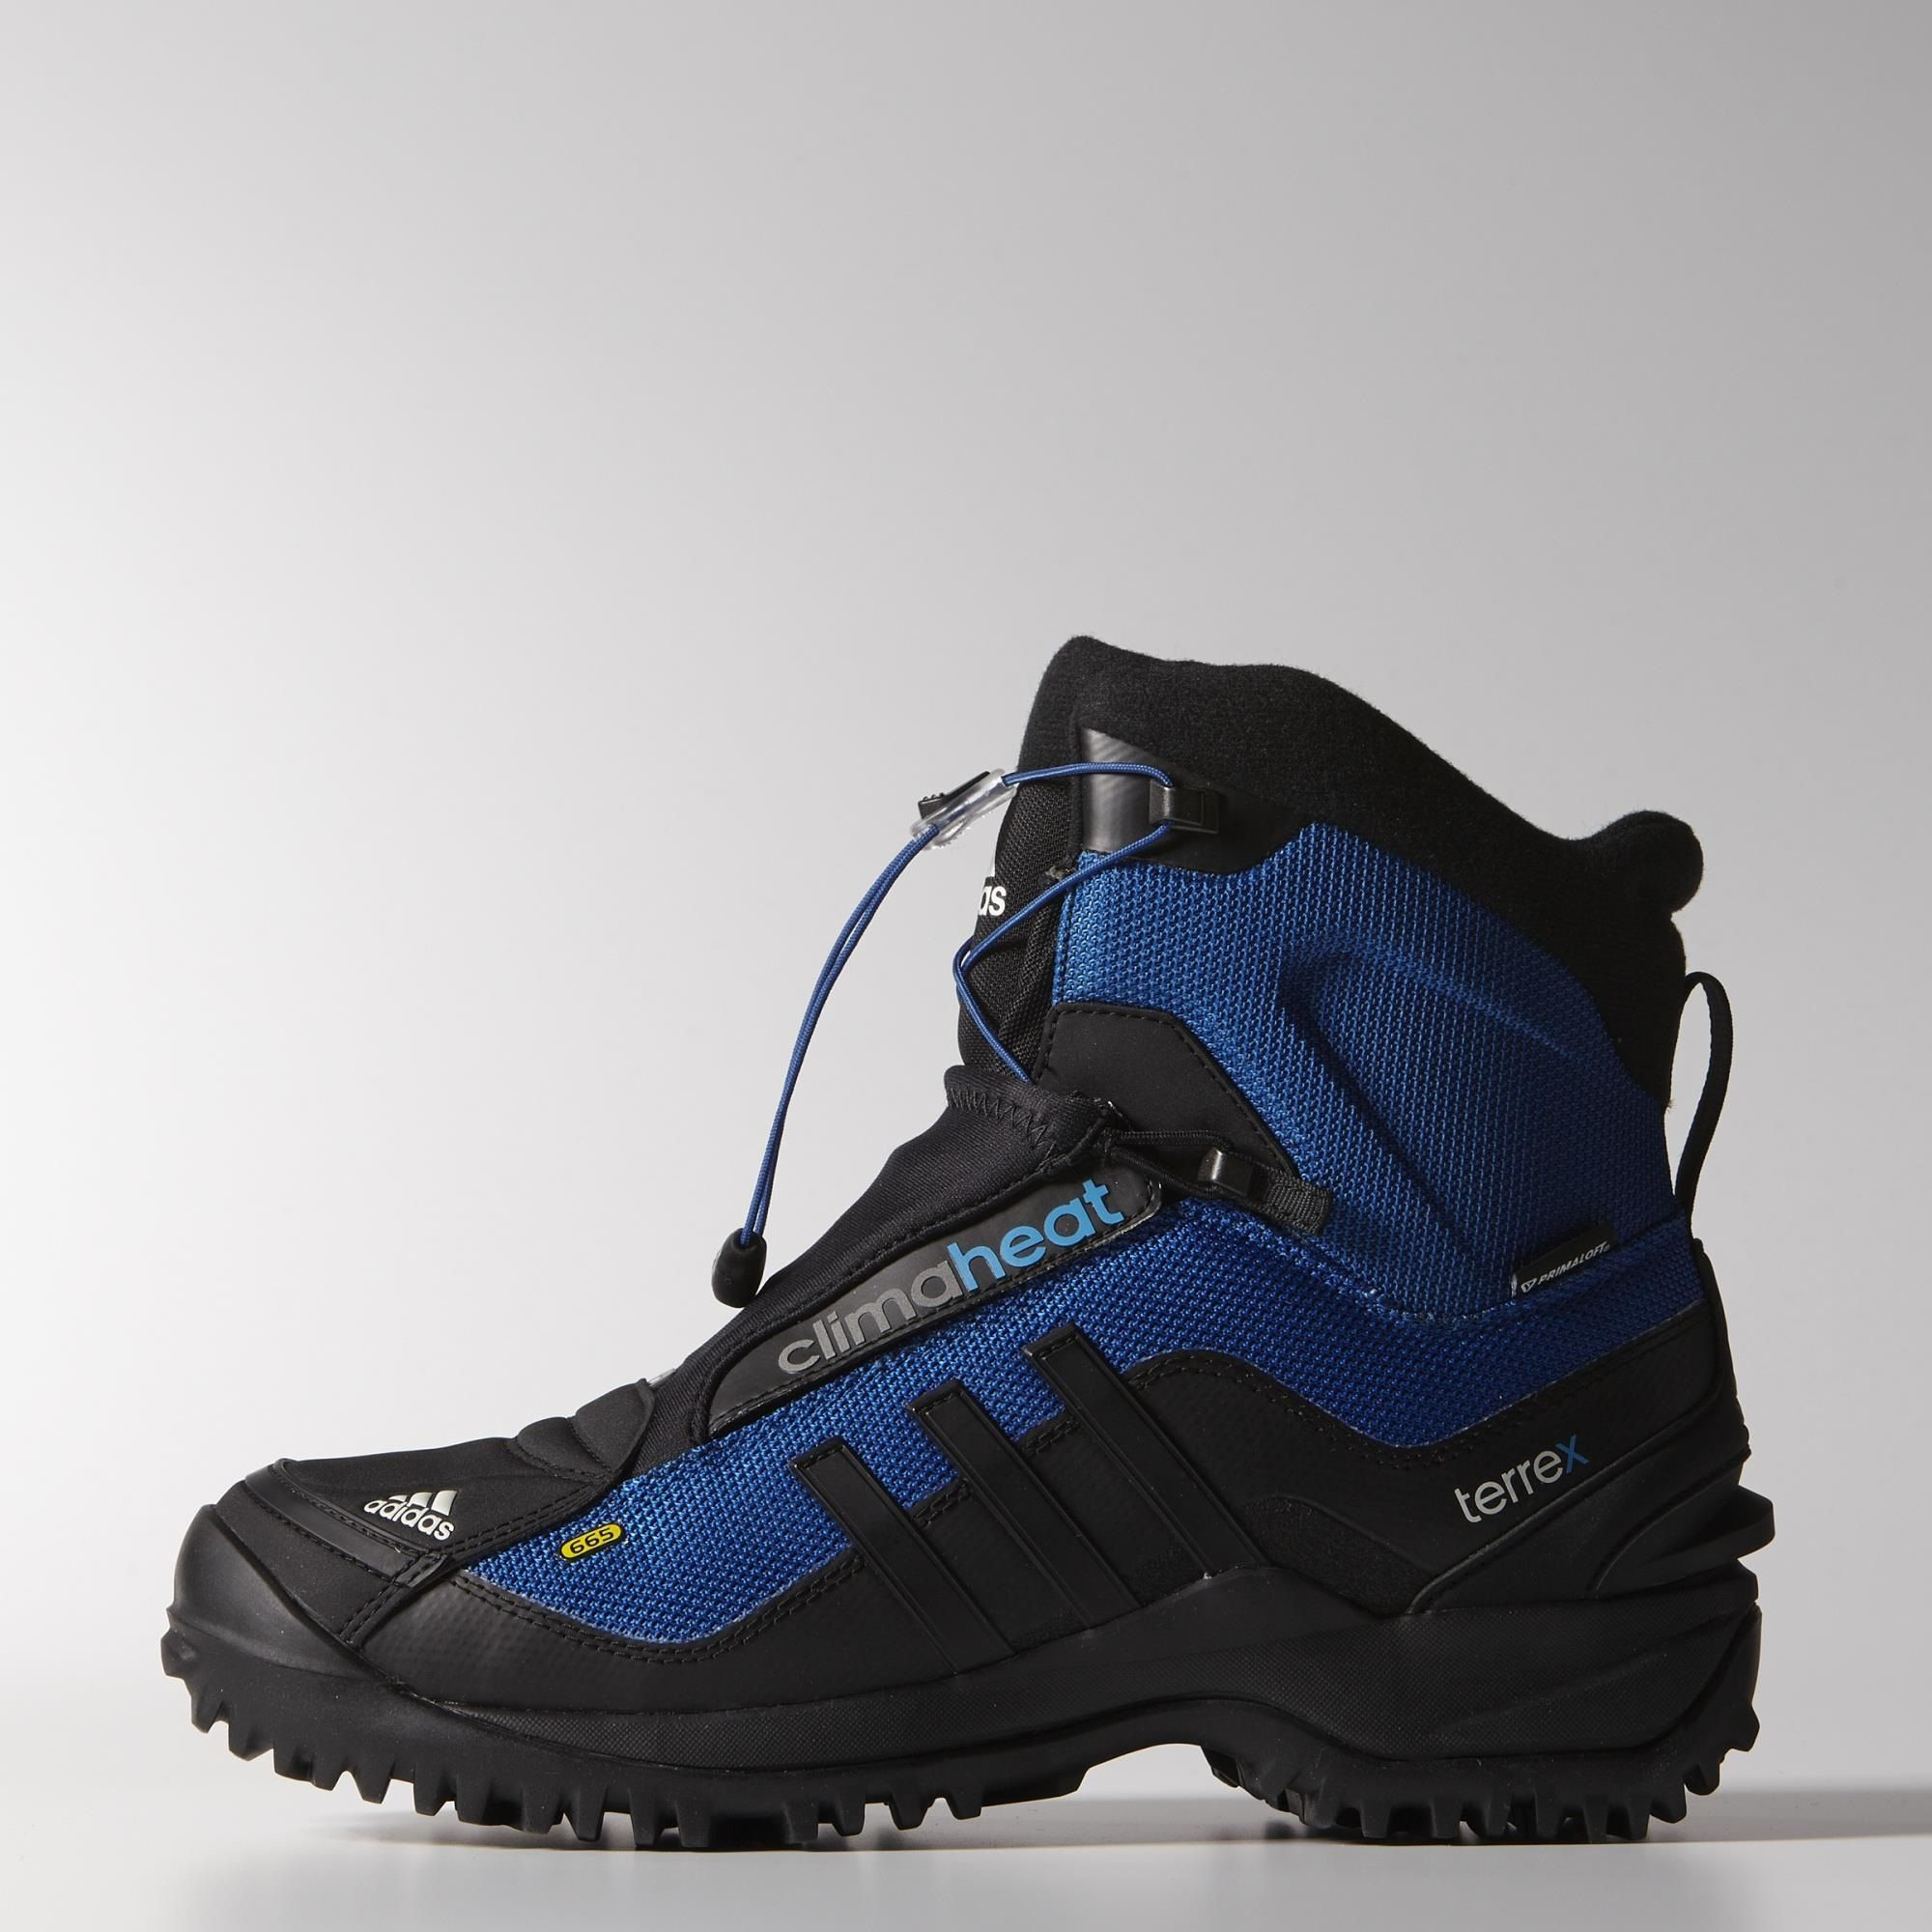 adidas Terrex Conrax Climaheat ClimaProof in 2020 | Boots